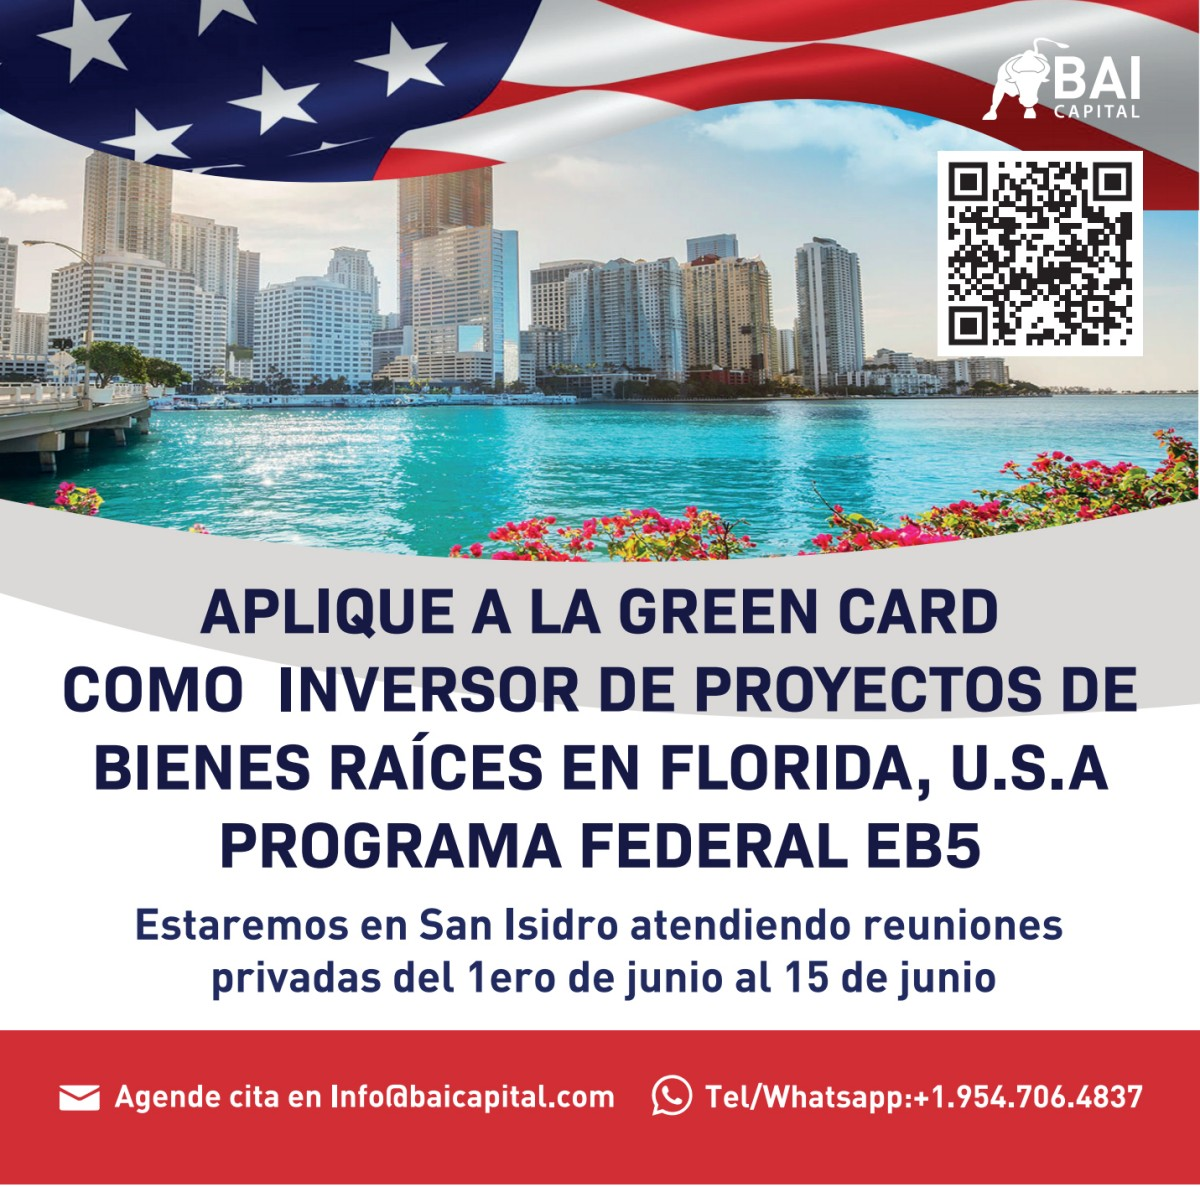 Apply for the Green Card as an investor in real estate projects in Florida, U.S.A. through the federal EB-5 program